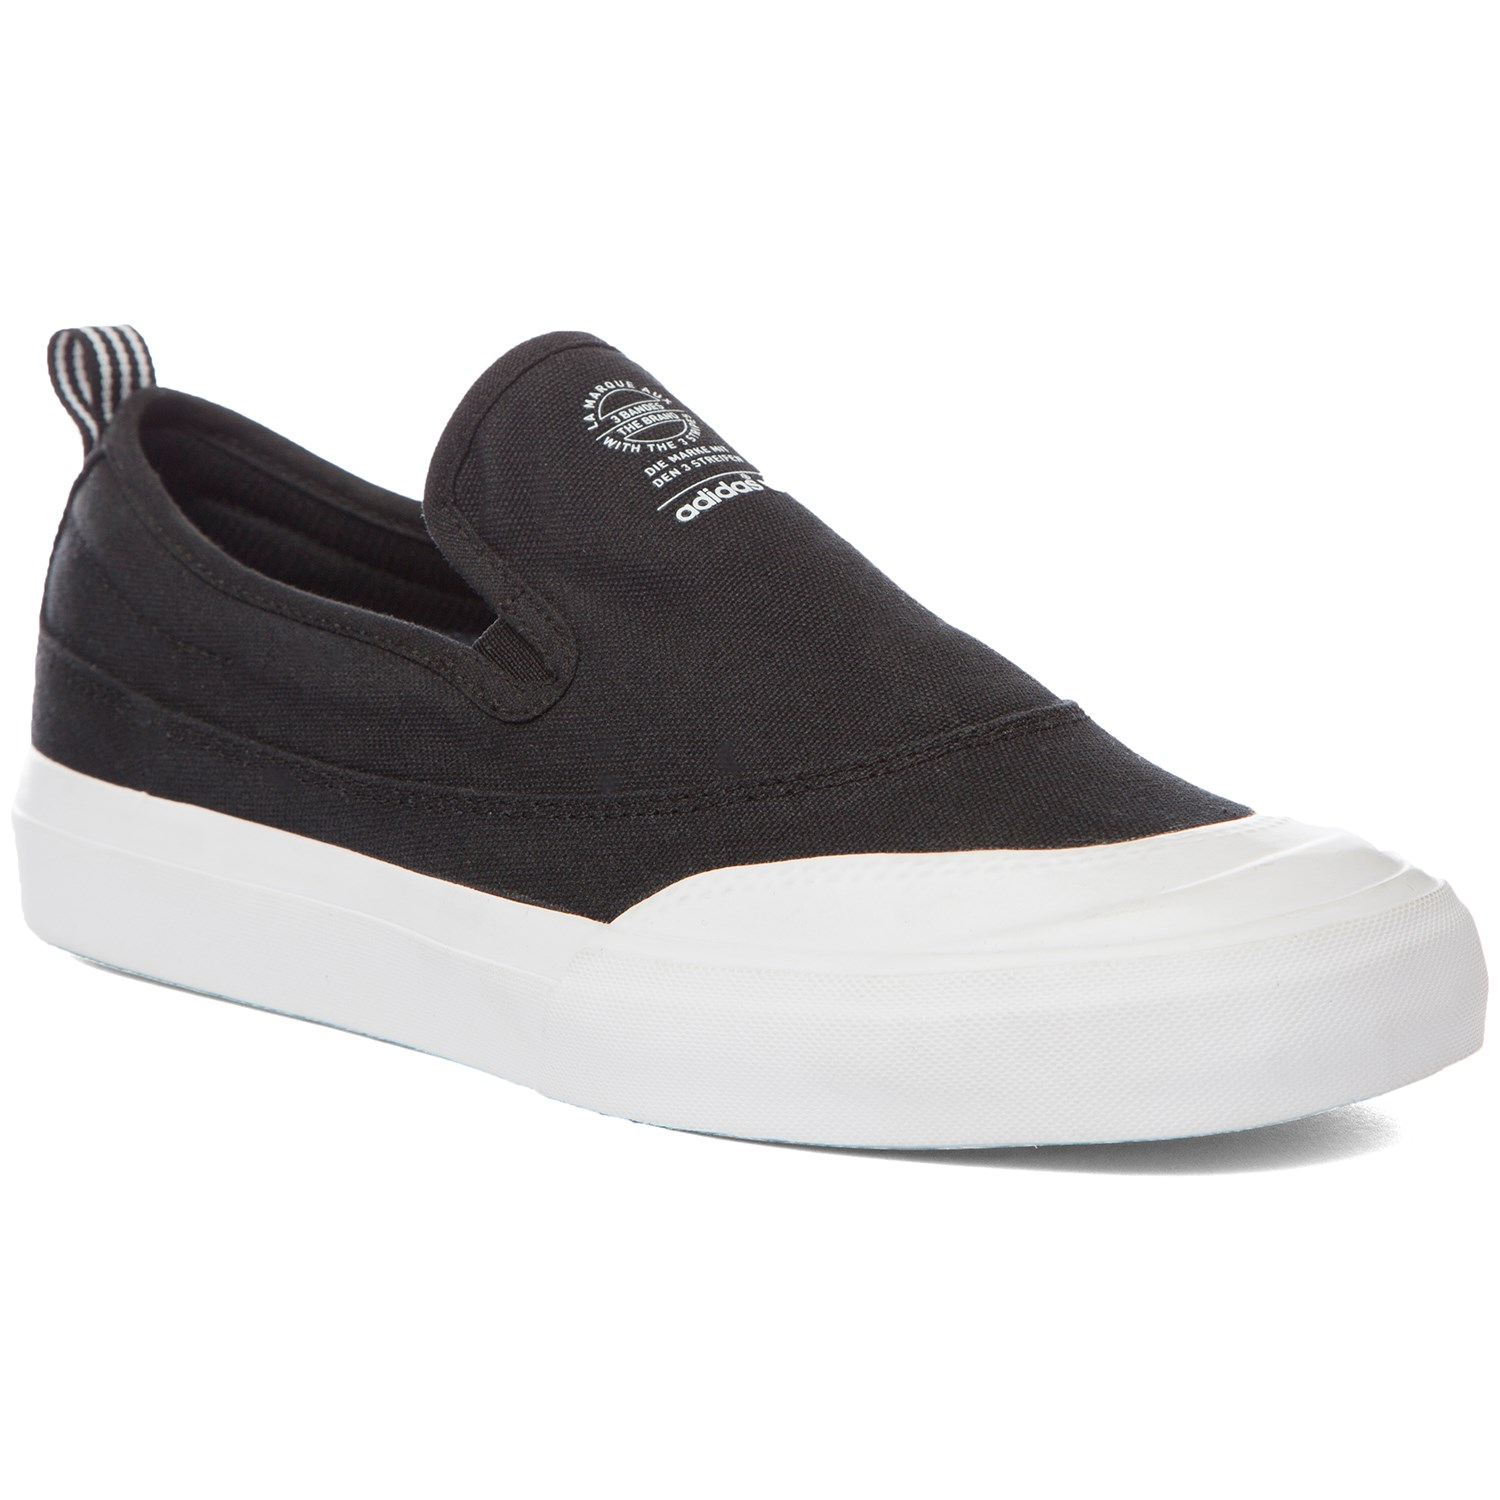 Adidas Matchcourt Slip Shoes Women S 59 95 Available In Only